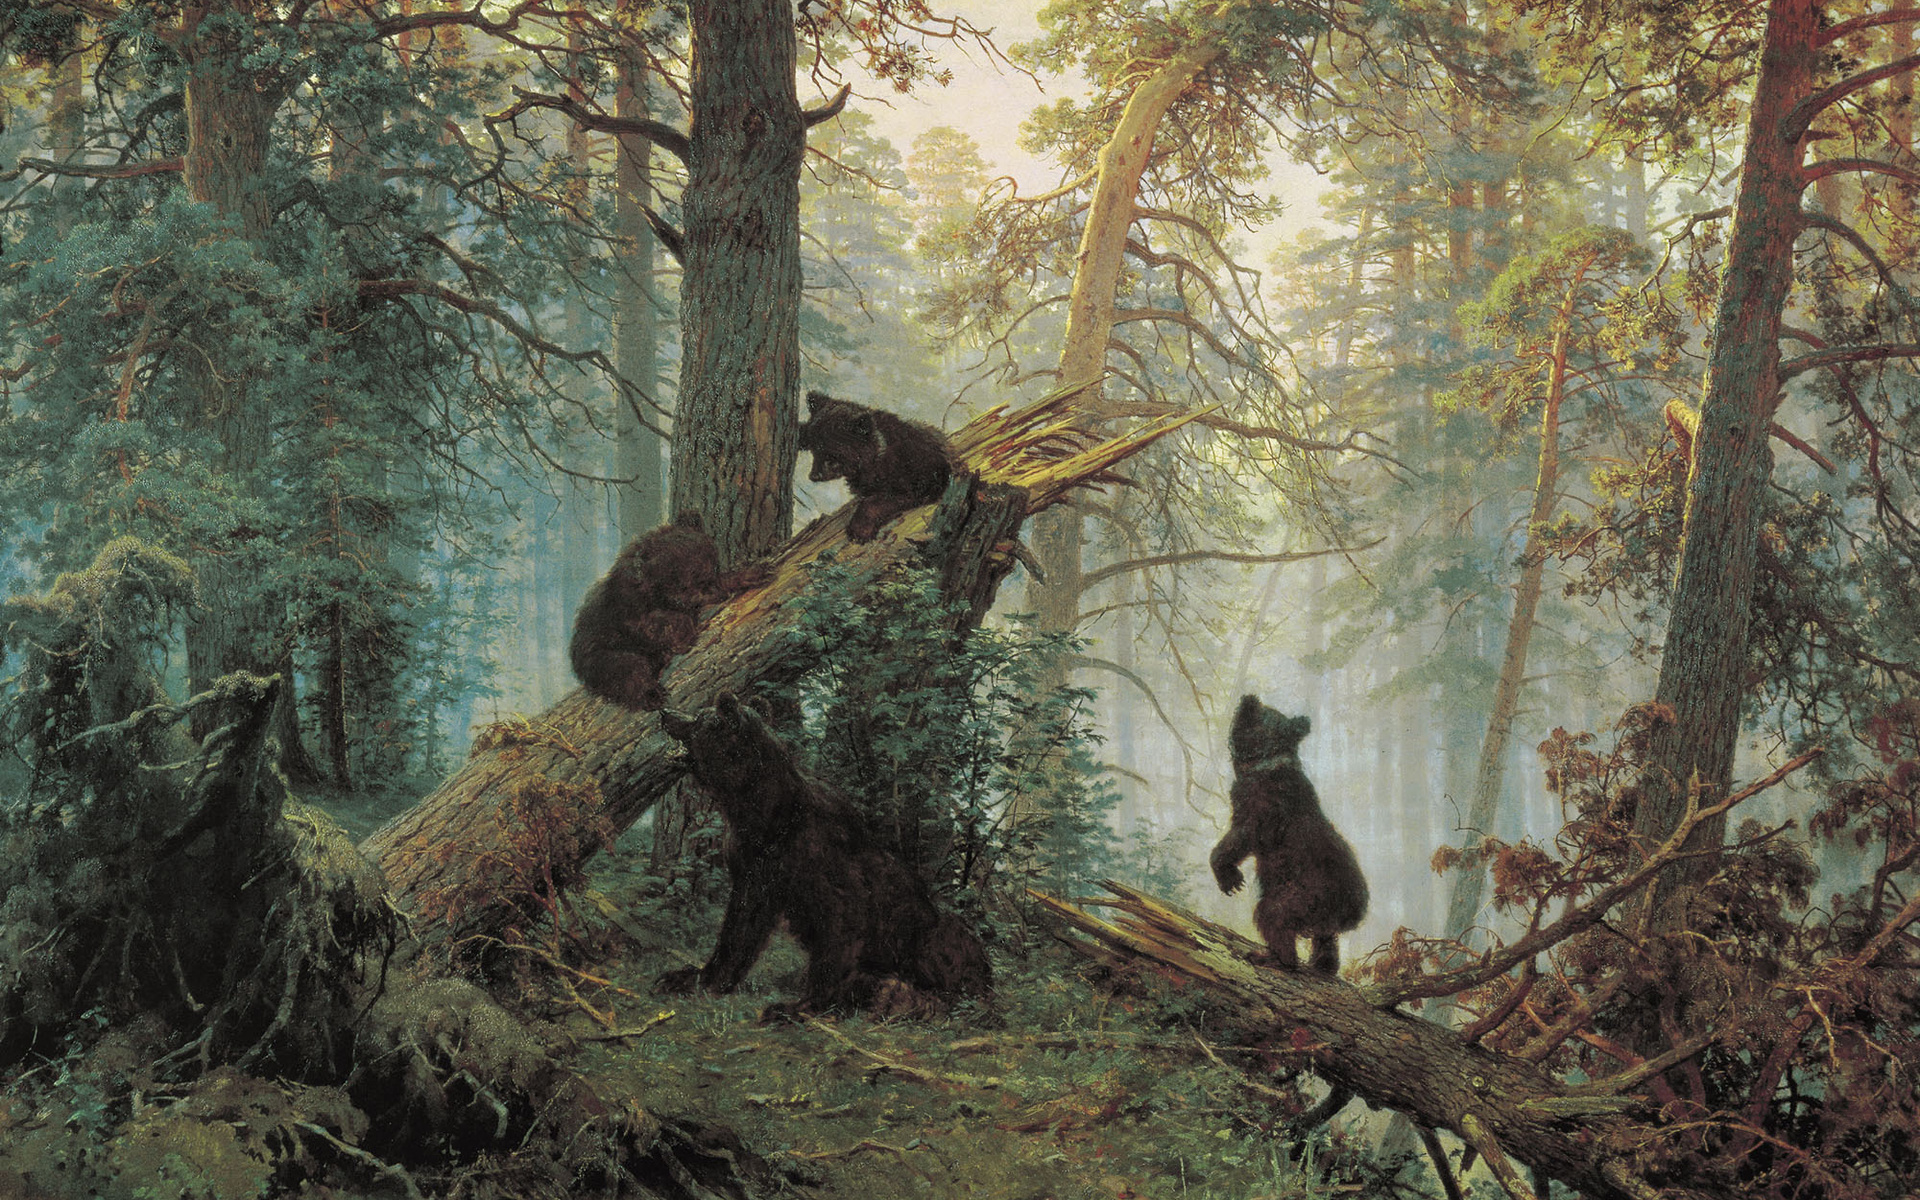 Shishkin painting bears bear paintings trees wallpaper | 1920x1200 ...: www.wallpaperup.com/89268/Shishkin_painting_bears_bear_paintings...